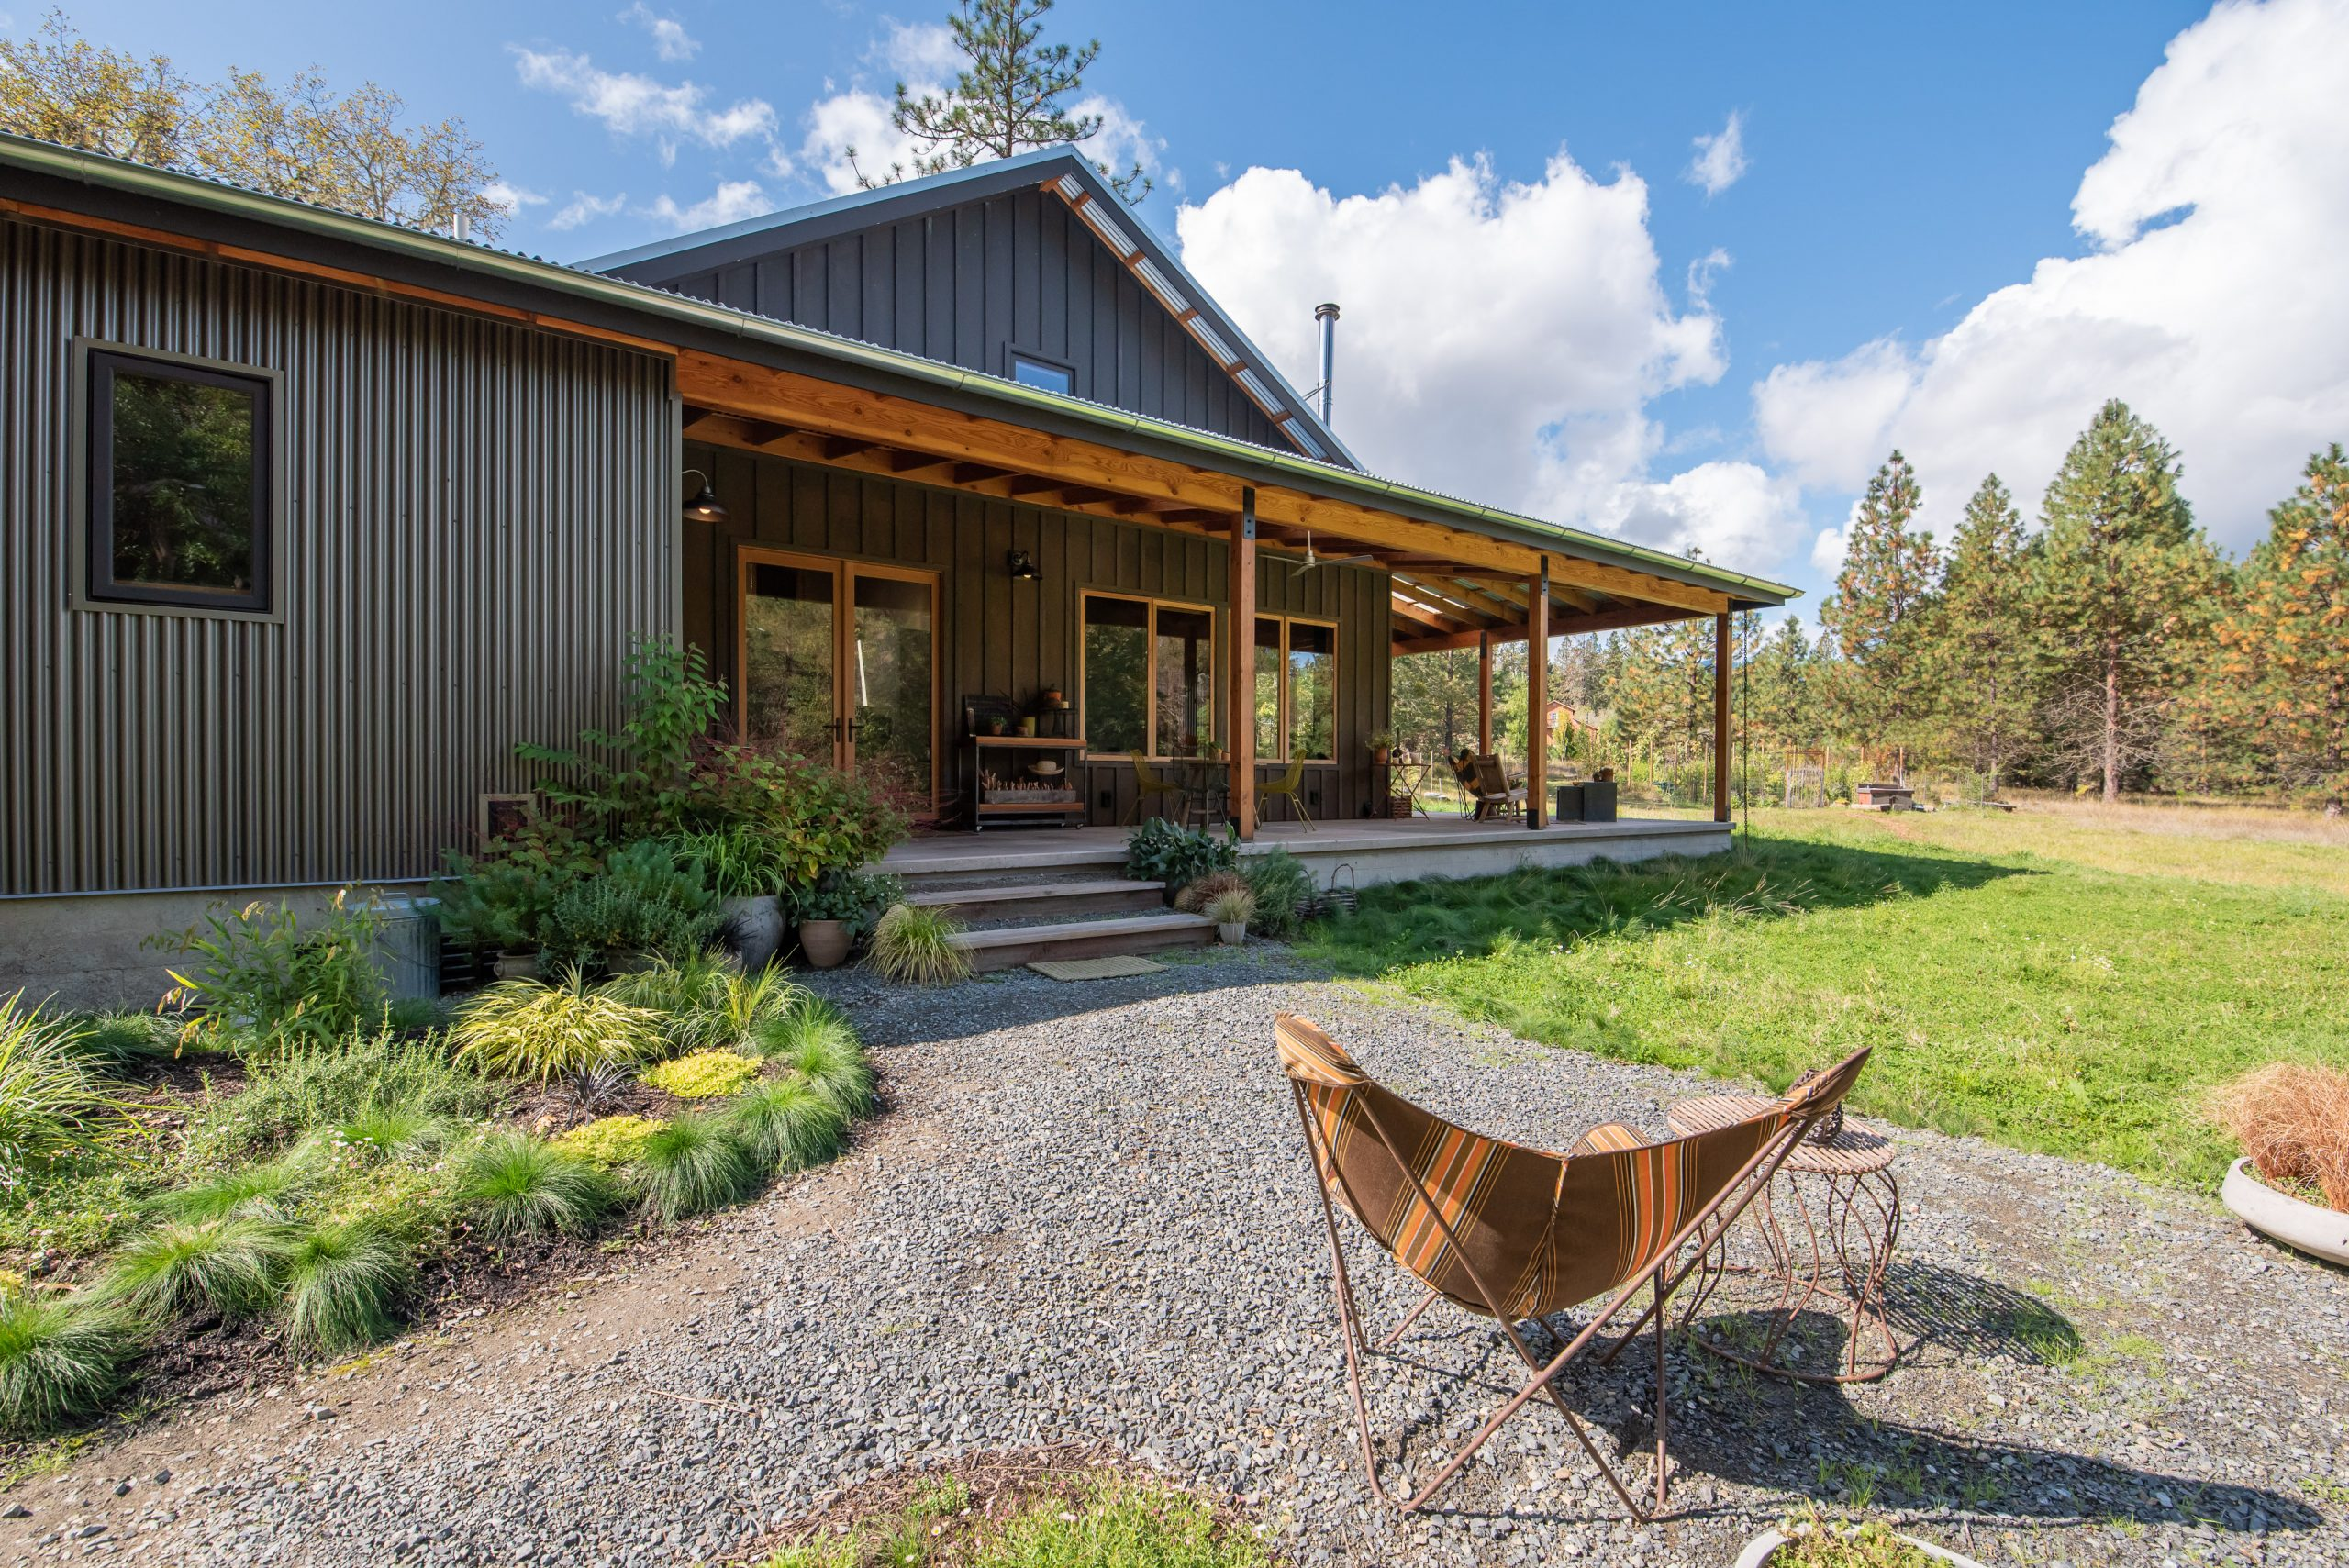 Outdoor Exterior Rustic New Home Construction in Williams Oregon